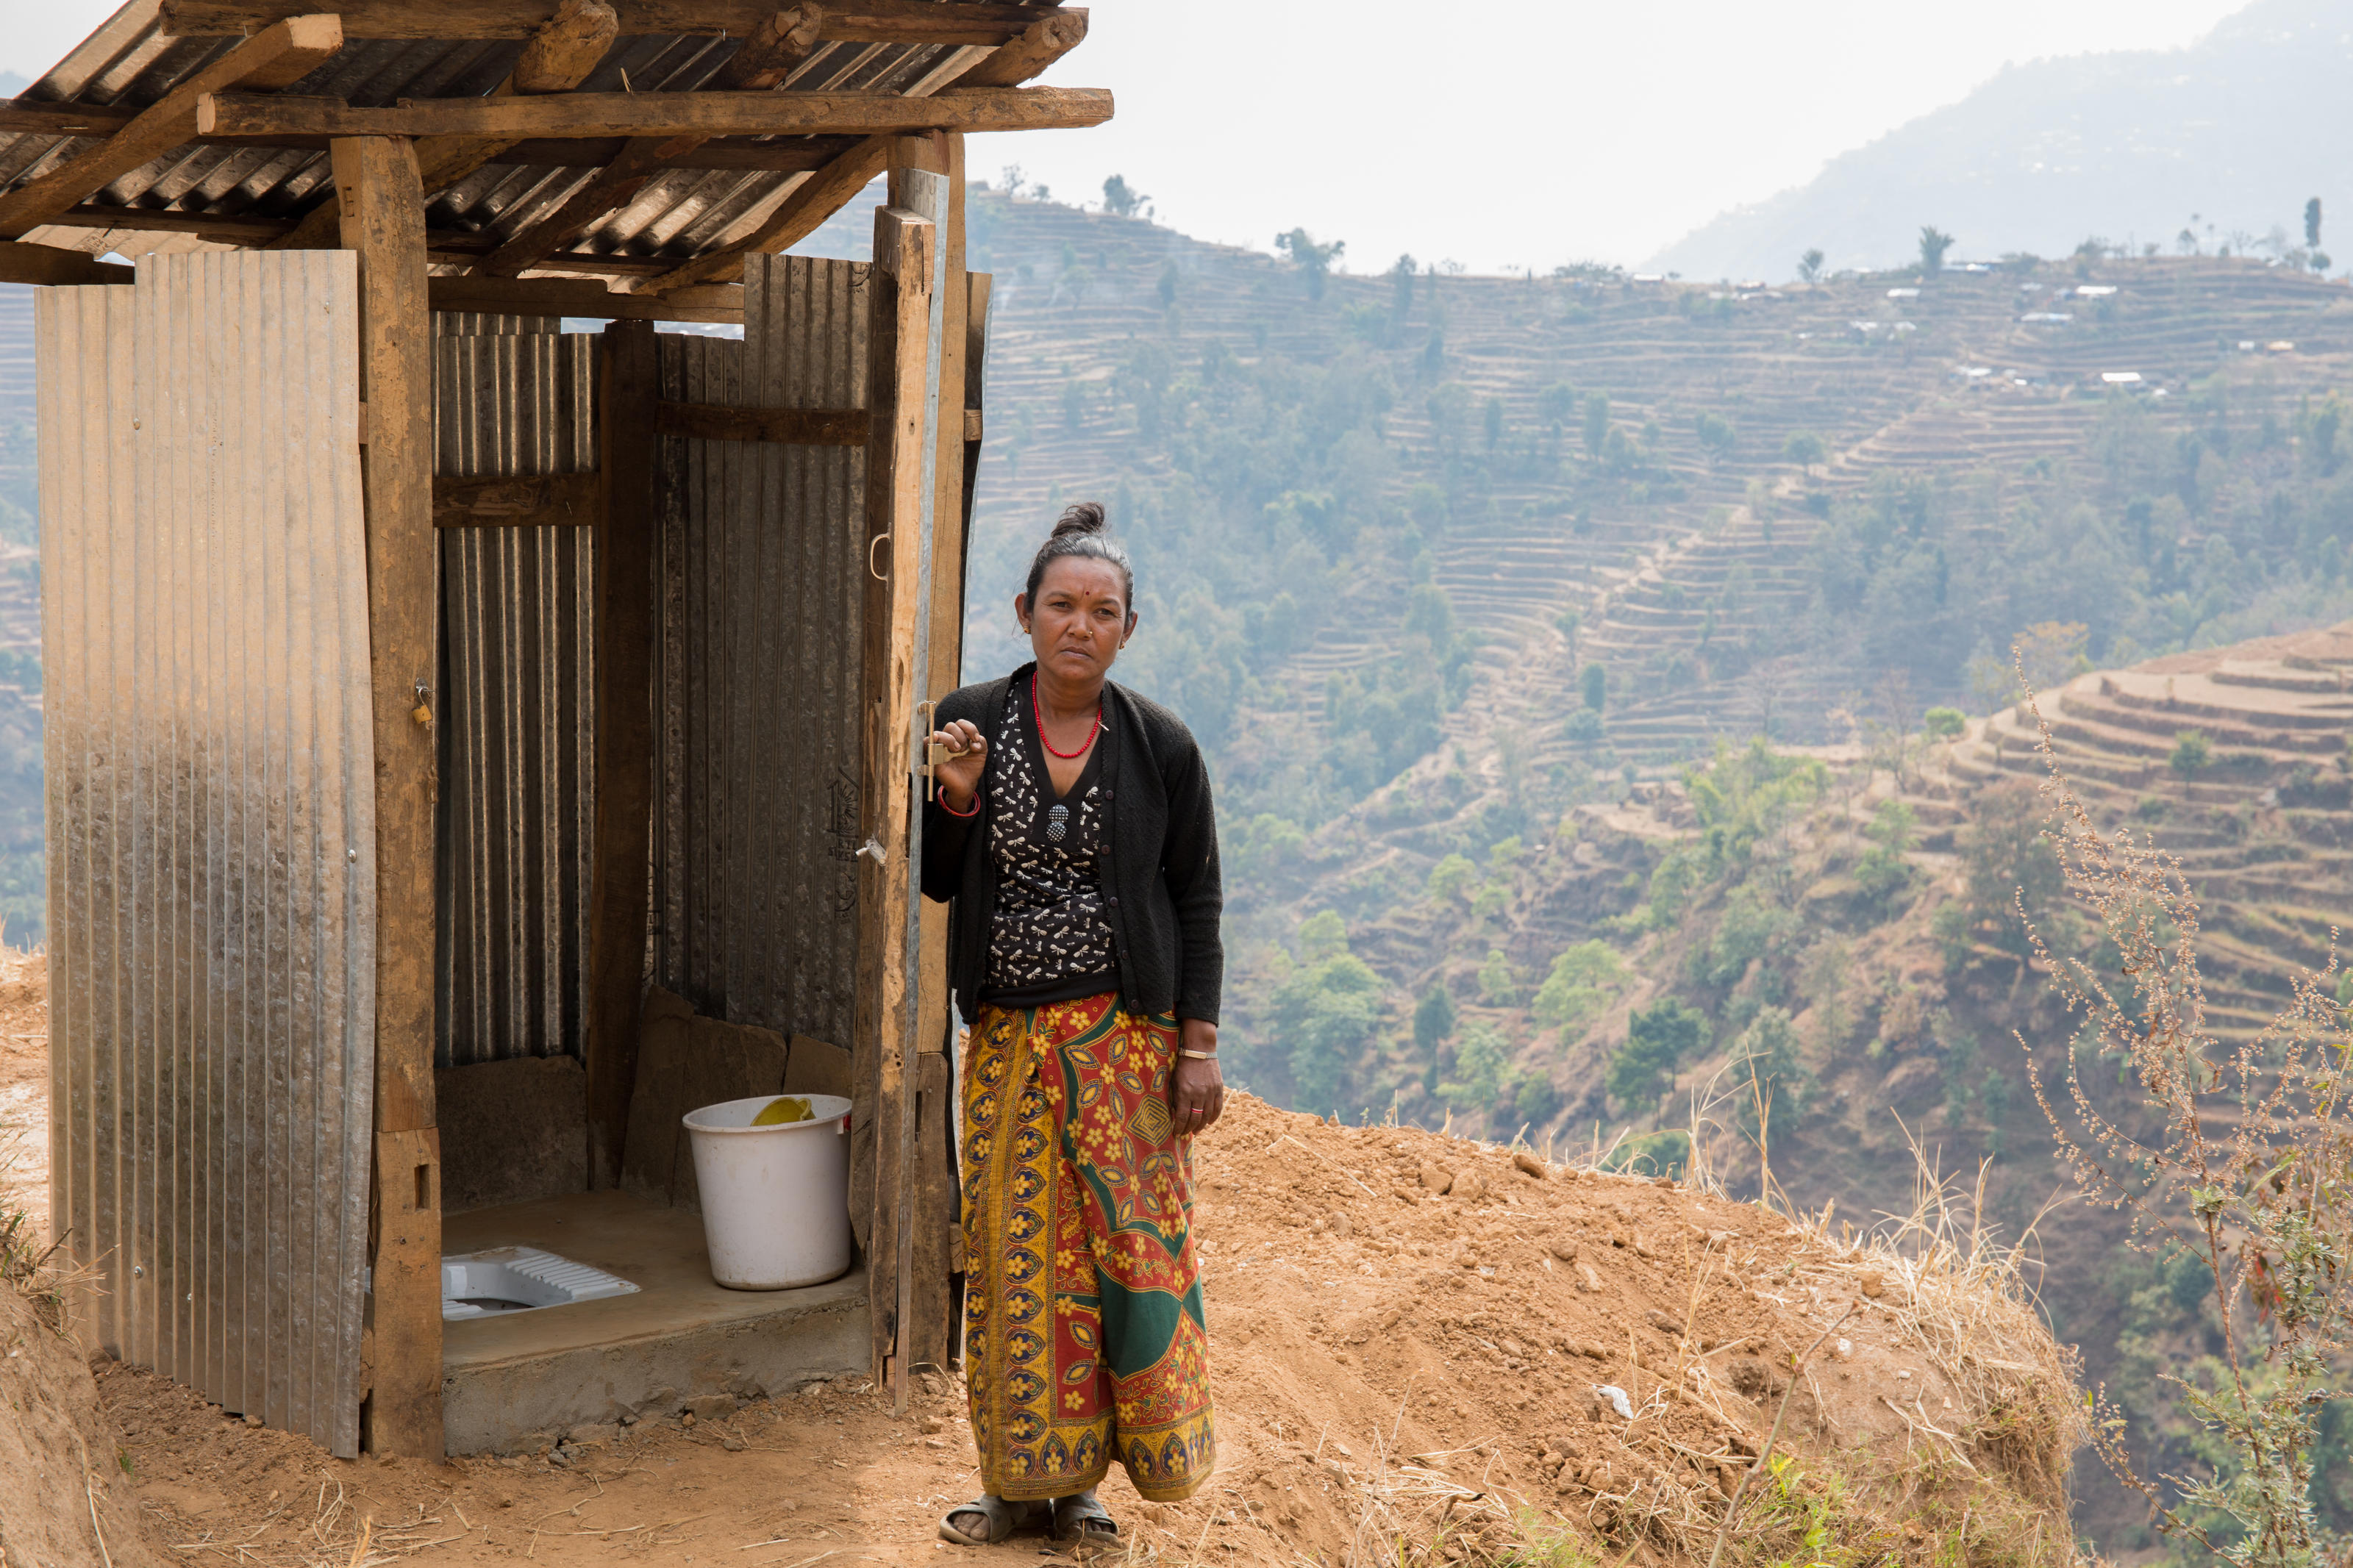 Bimaya has managed to build her toilet after getting help from WaterAid Nepal. Gorkha, Nepal.